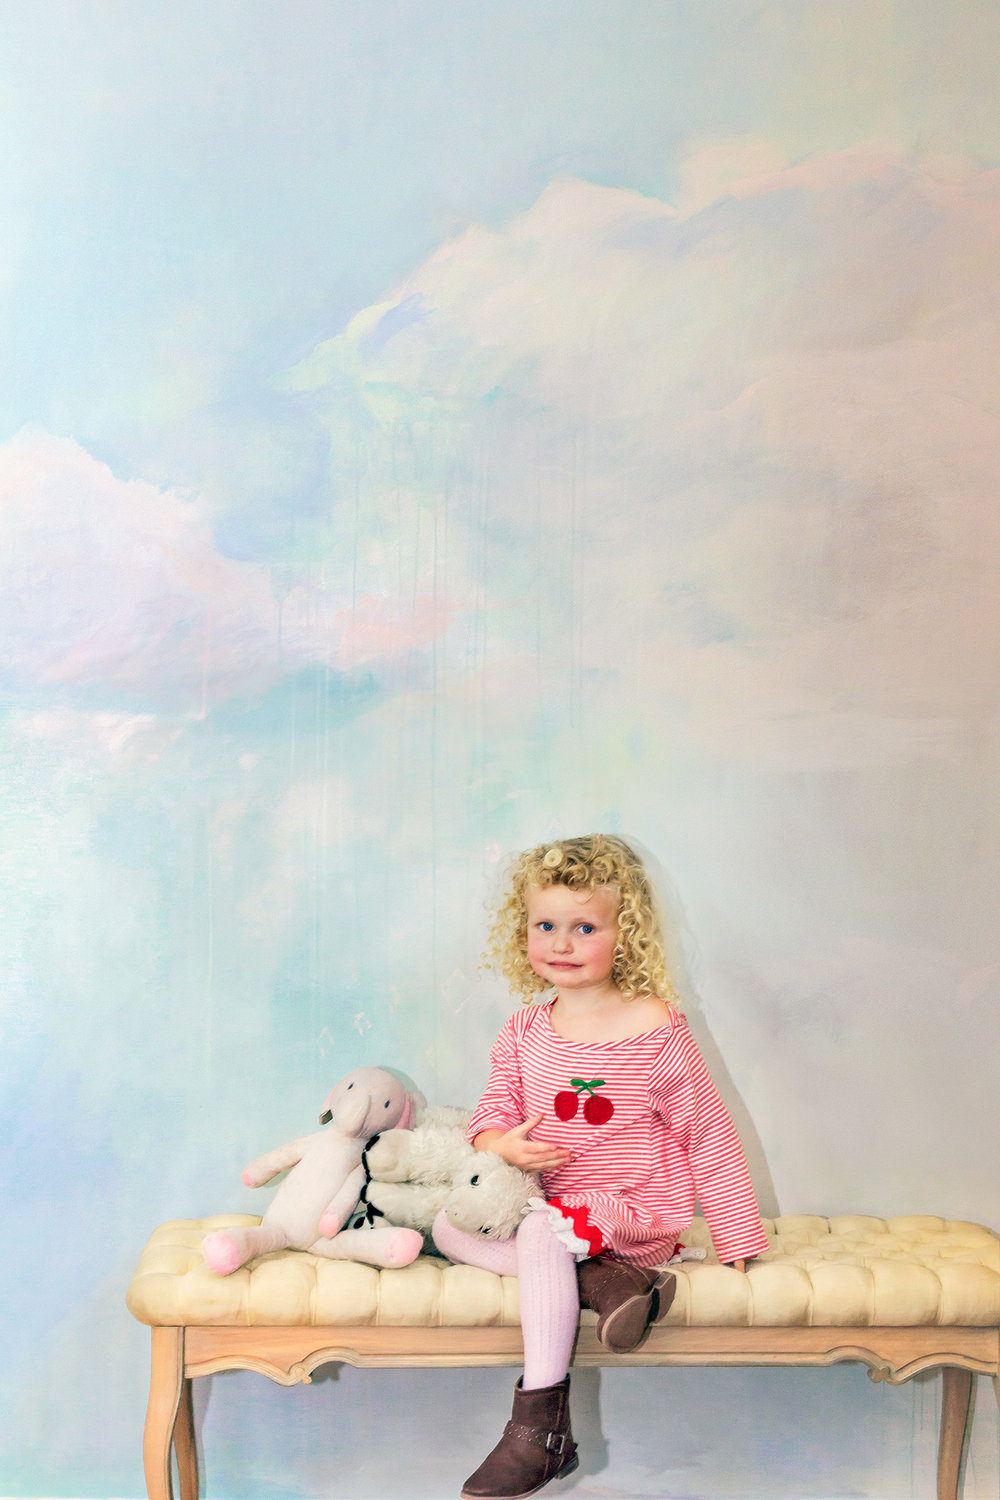 Dreamily styled children's bedroom idea, with painted cloud mural in pastel tones, blonde curly haired child model wears stripey cherry red dress and sits next to her stuffed toys.